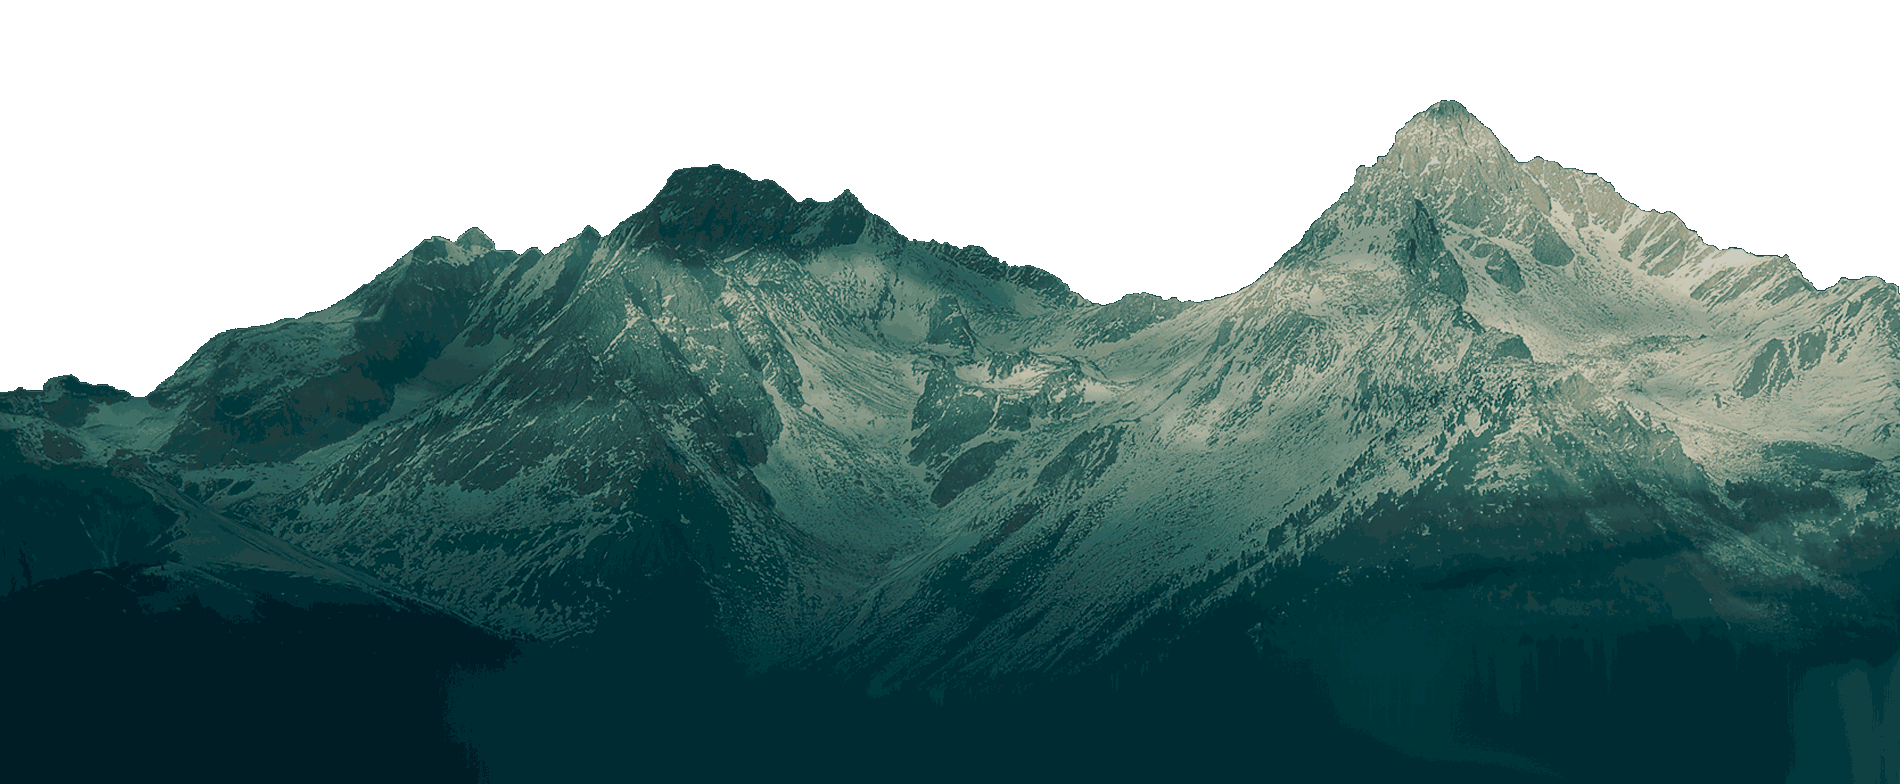 Clipart mountain mountain range. Png download free icons